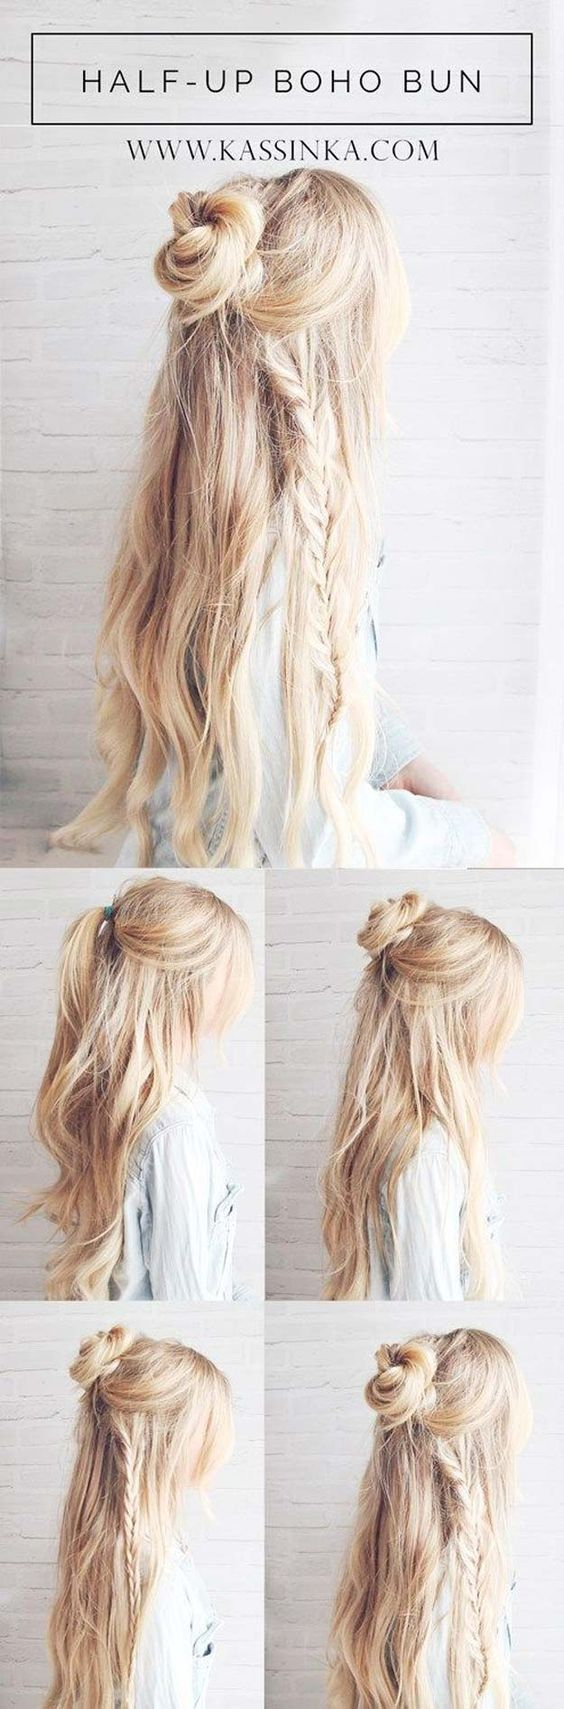 Best Hairstyles for Long Hair – Boho Braided Bun Hair – Step by Step Tutorials for Easy Curls, Updo, Half Up, Braids and Lazy Girl Looks. Prom Ideas, …